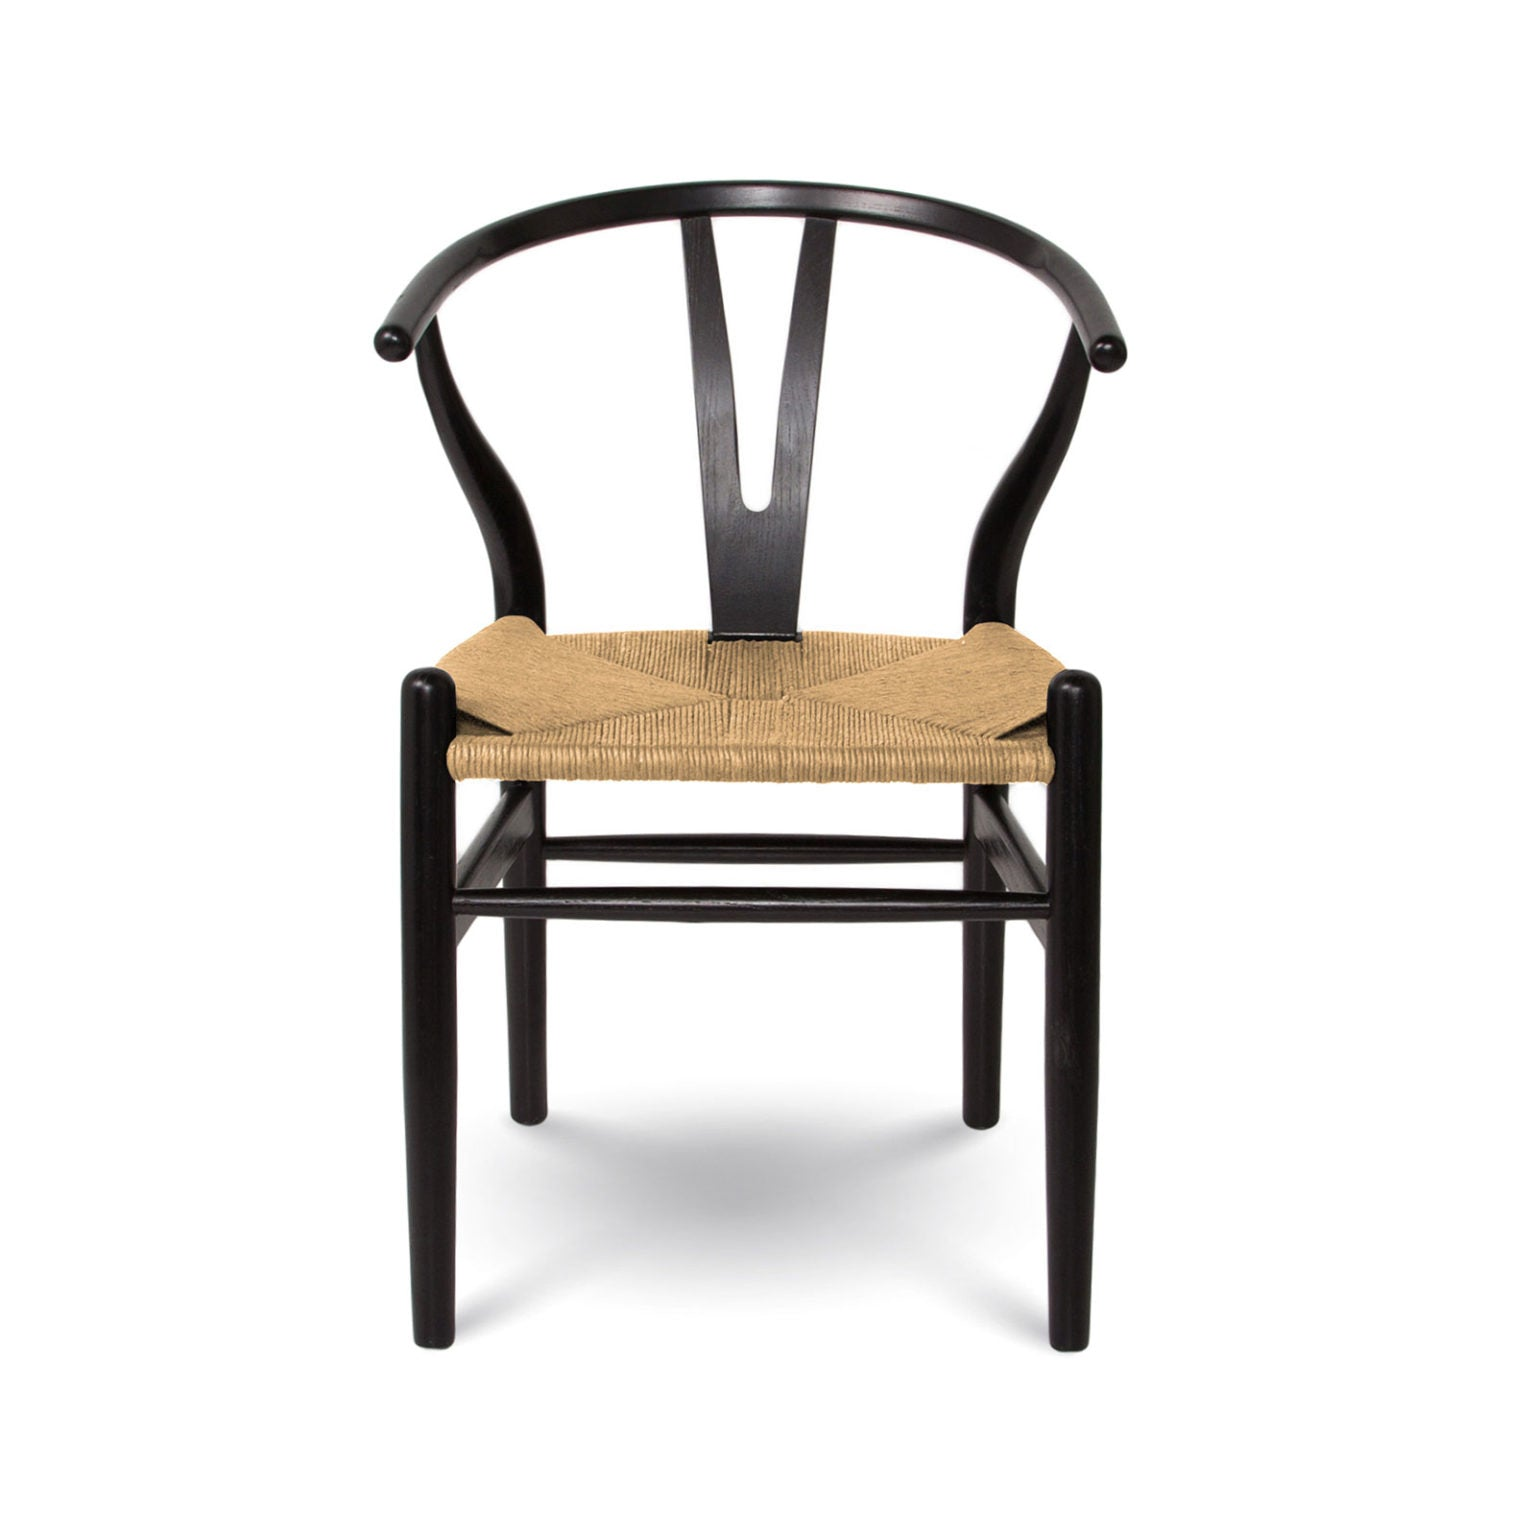 Frida Dining Chair - Black with Natural Seat